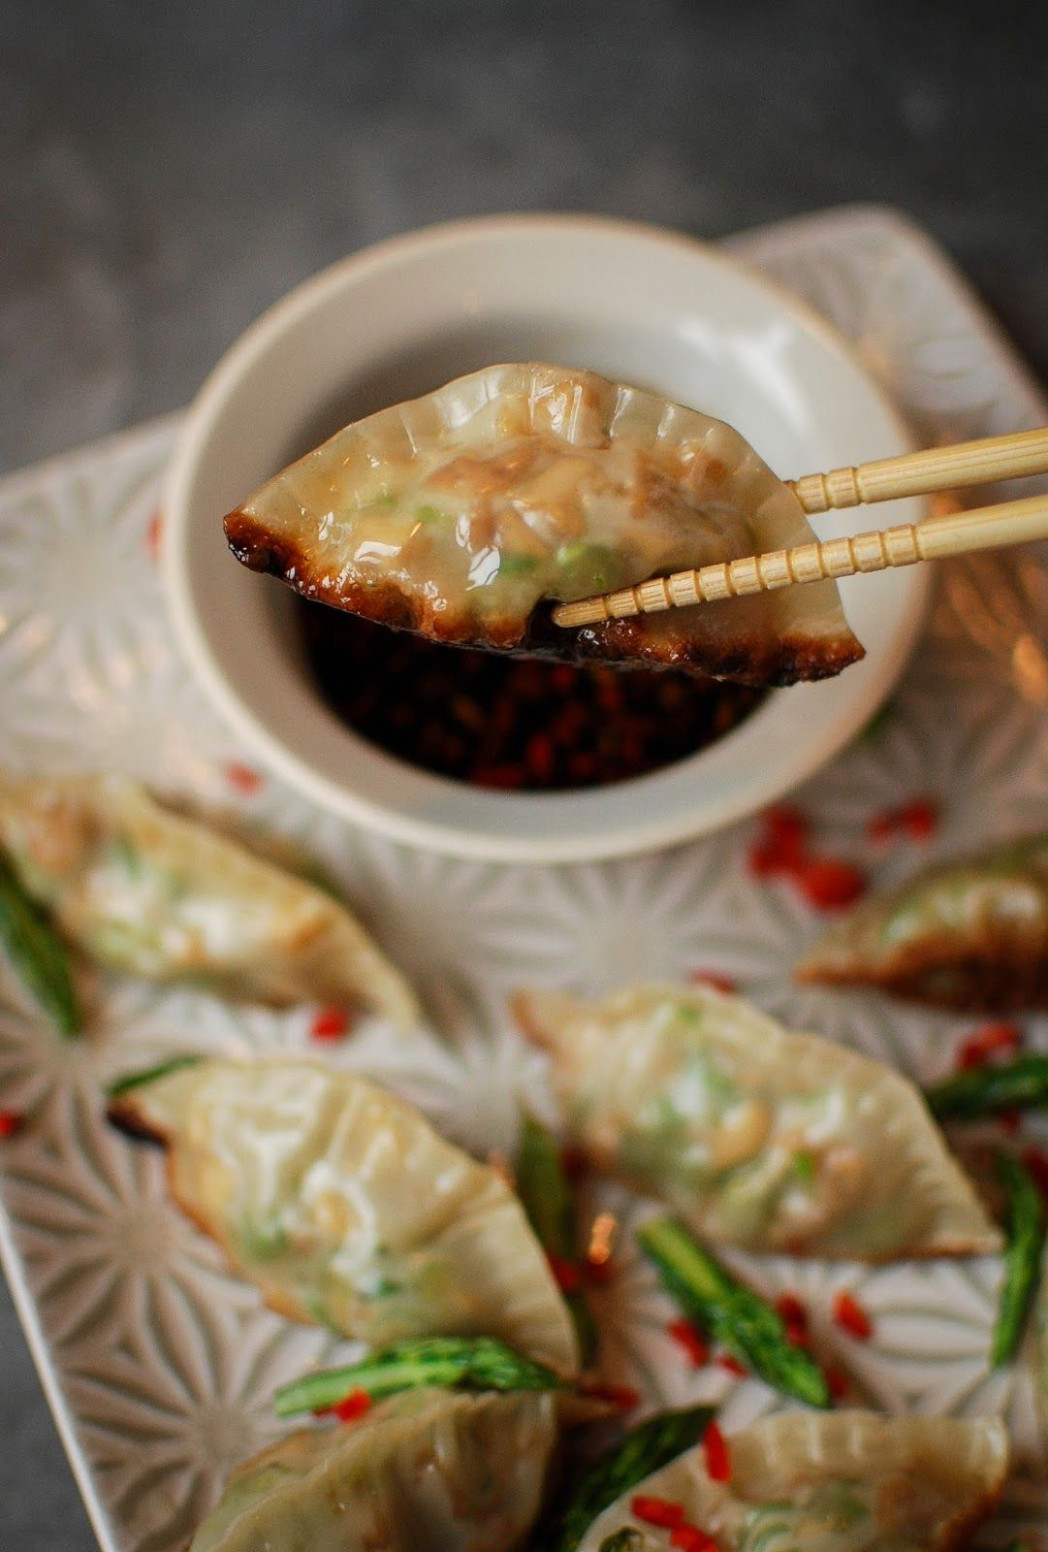 Homemade Asparagus and Tofu Gyoza Recipe - Katiecakes ..